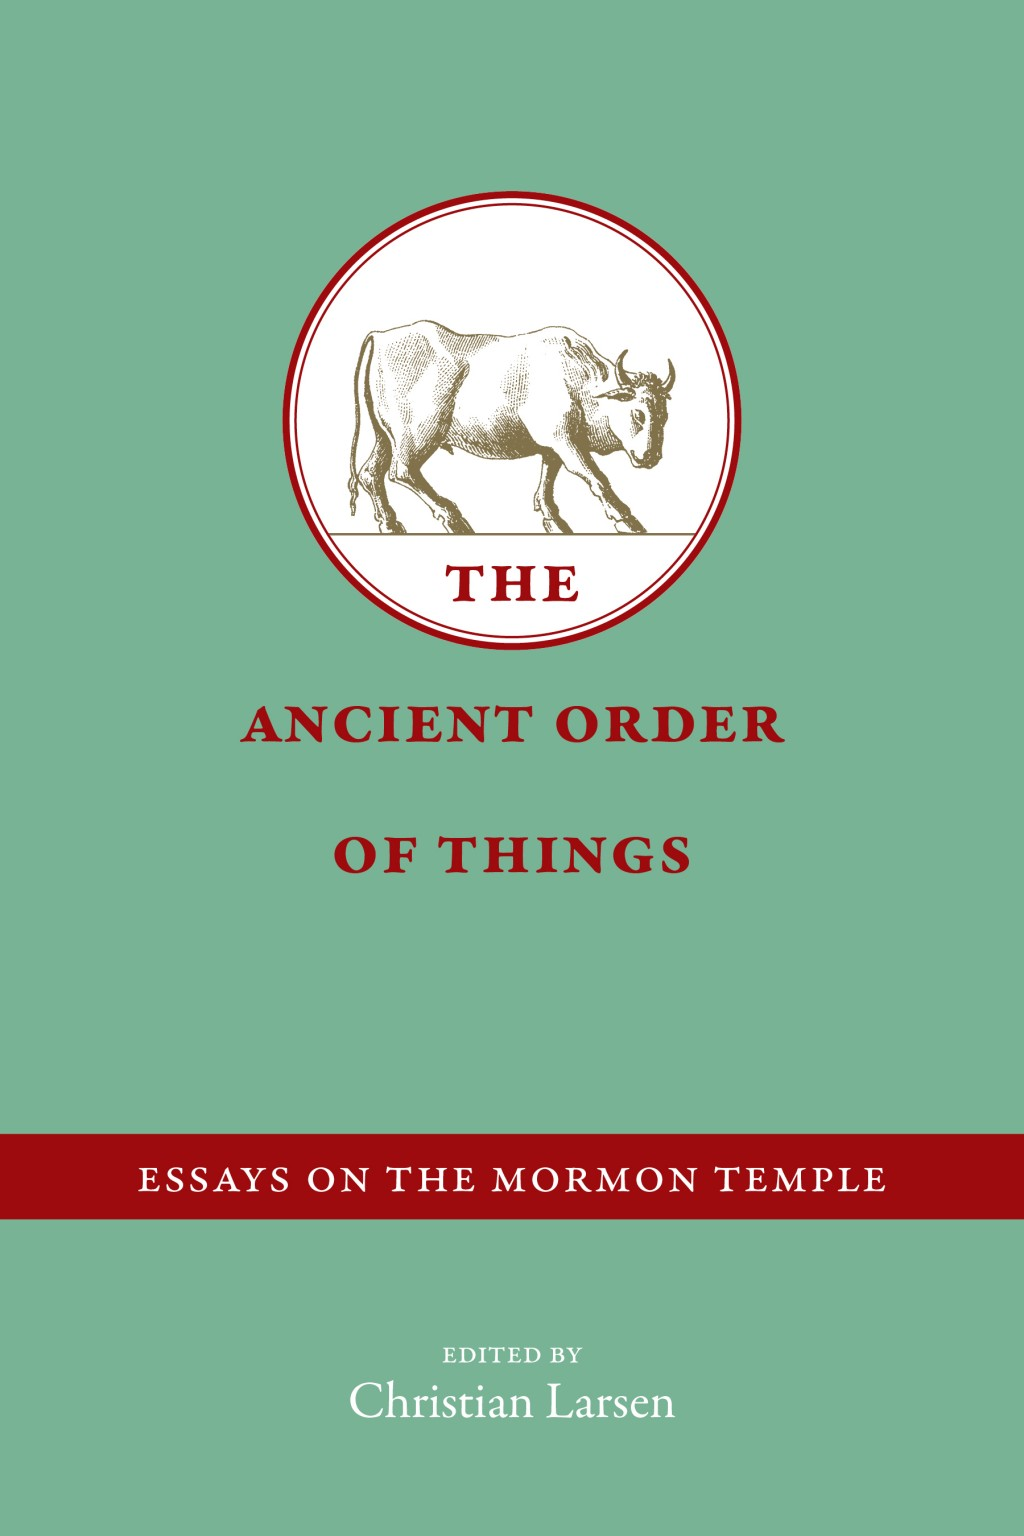 014 Ancient Order Of Things Essay Example Mormon Exceptional Essays Lds.org Book Abraham Mormonthink Large